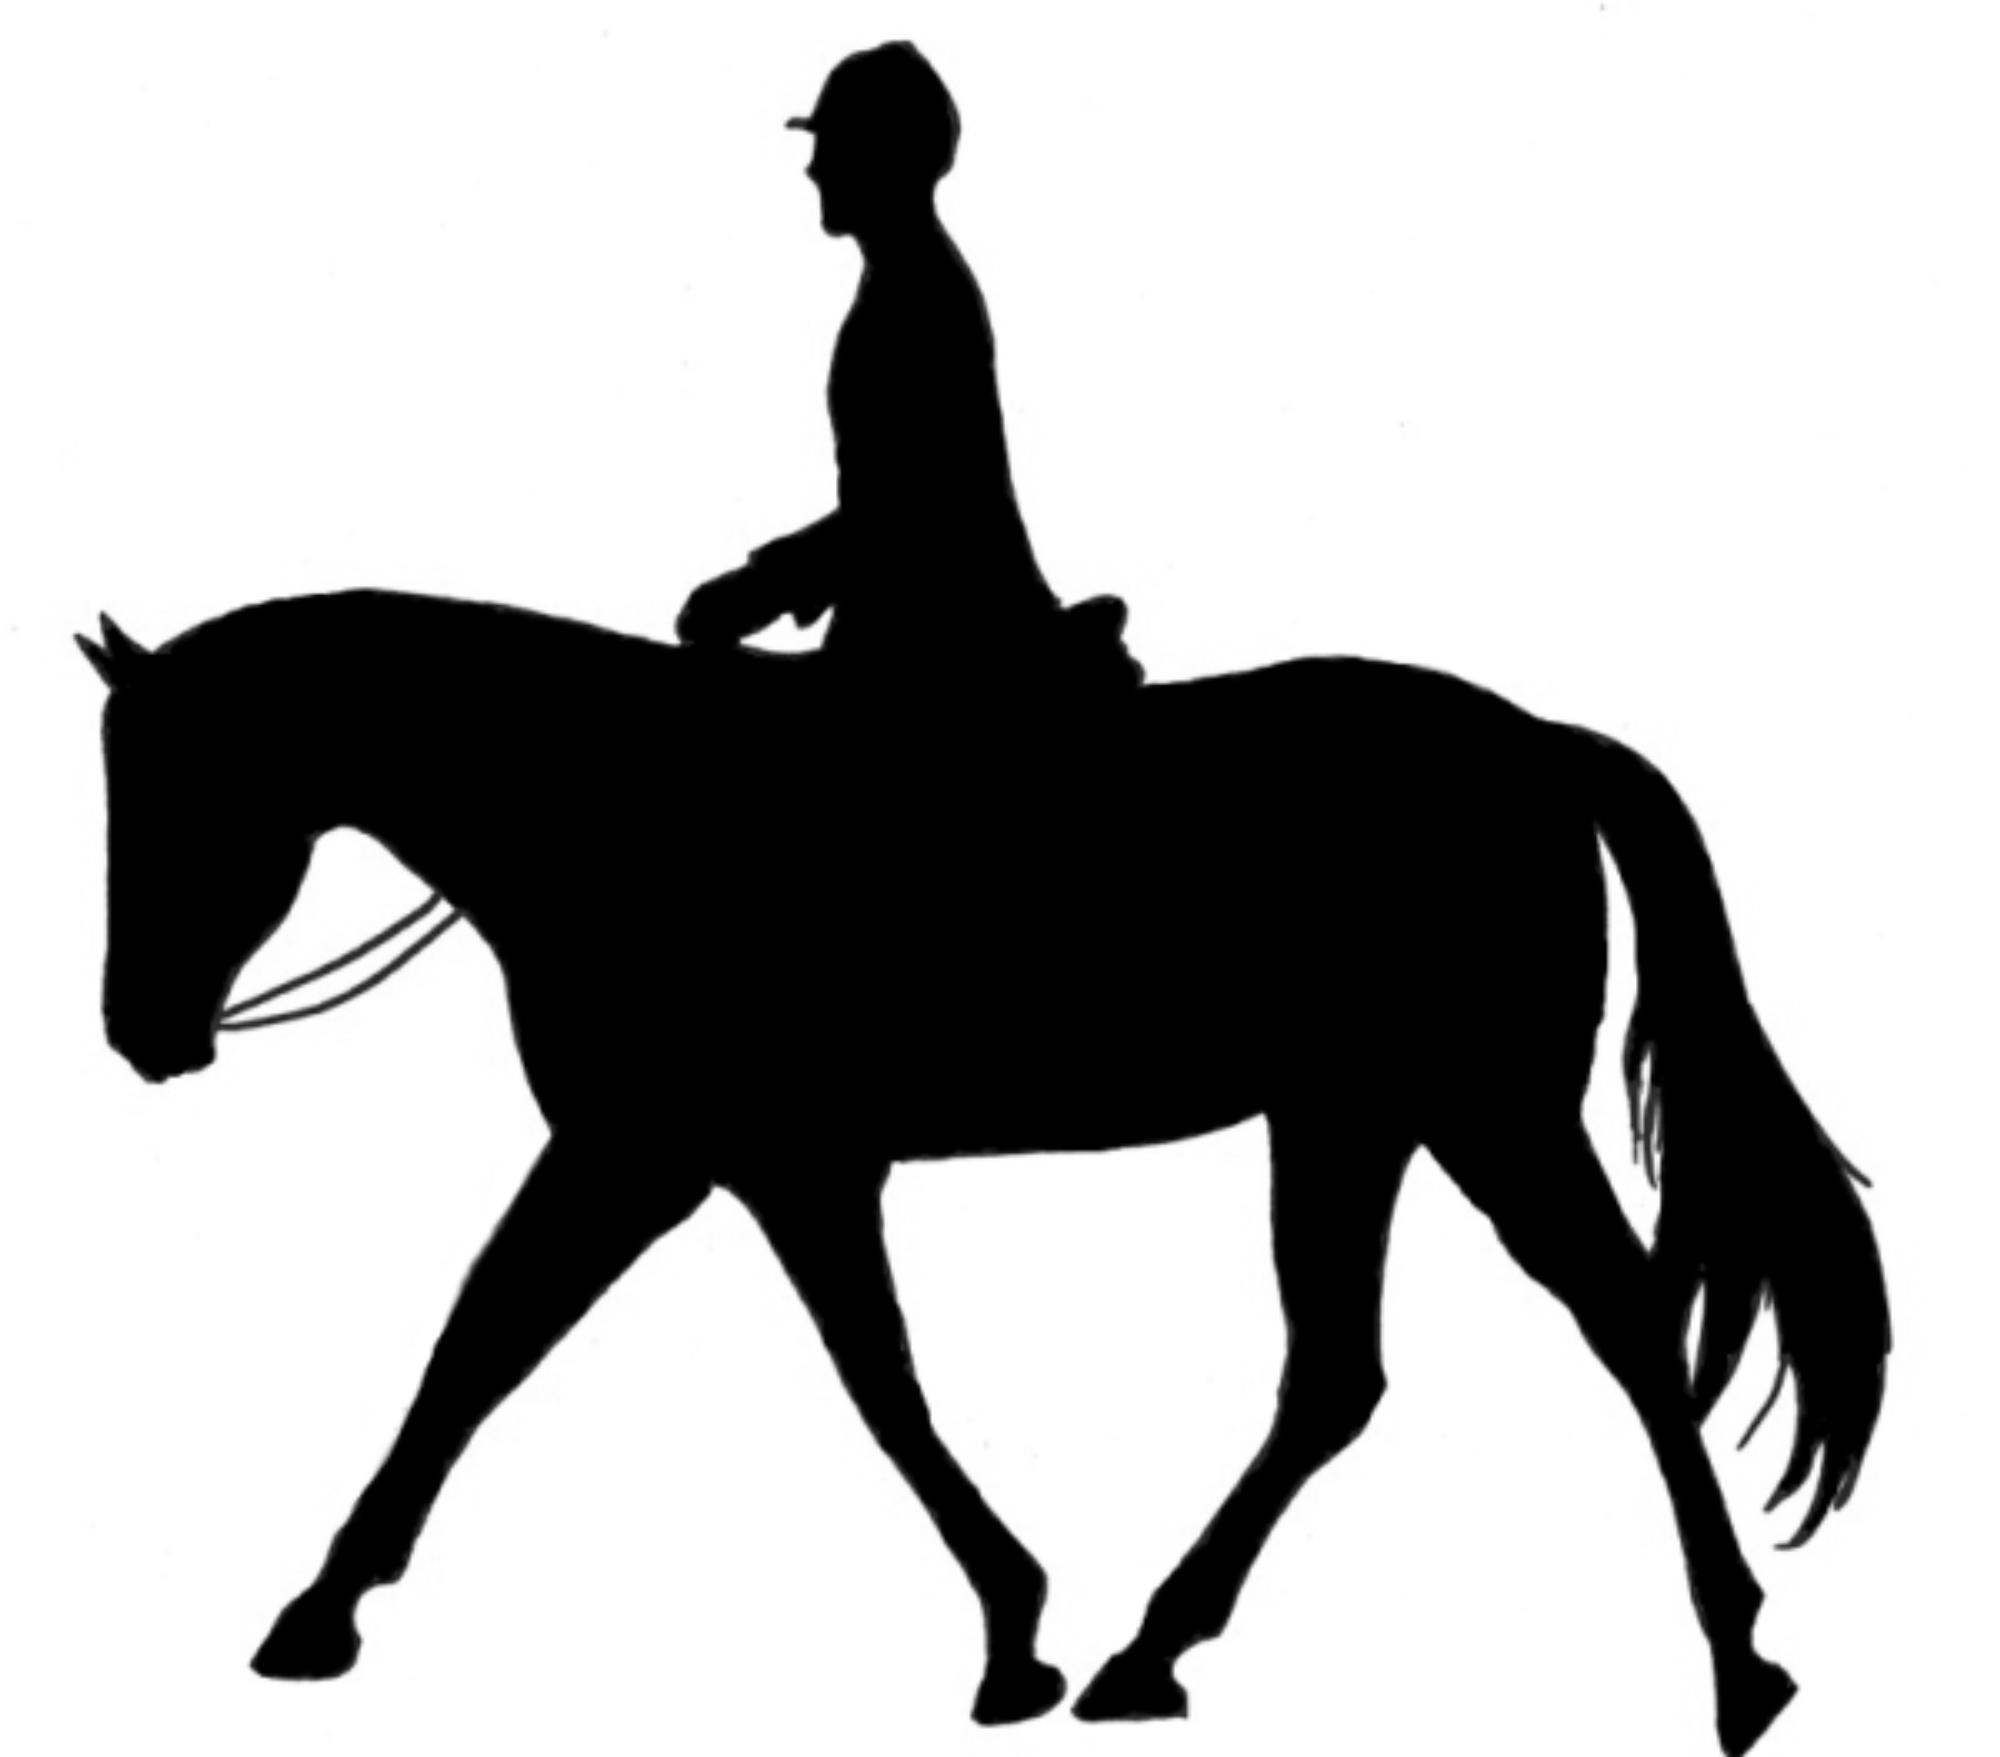 Clipart horseriding clip art royalty free stock Best Horse Riding Clipart #29031 - Clipartion.com clip art royalty free stock